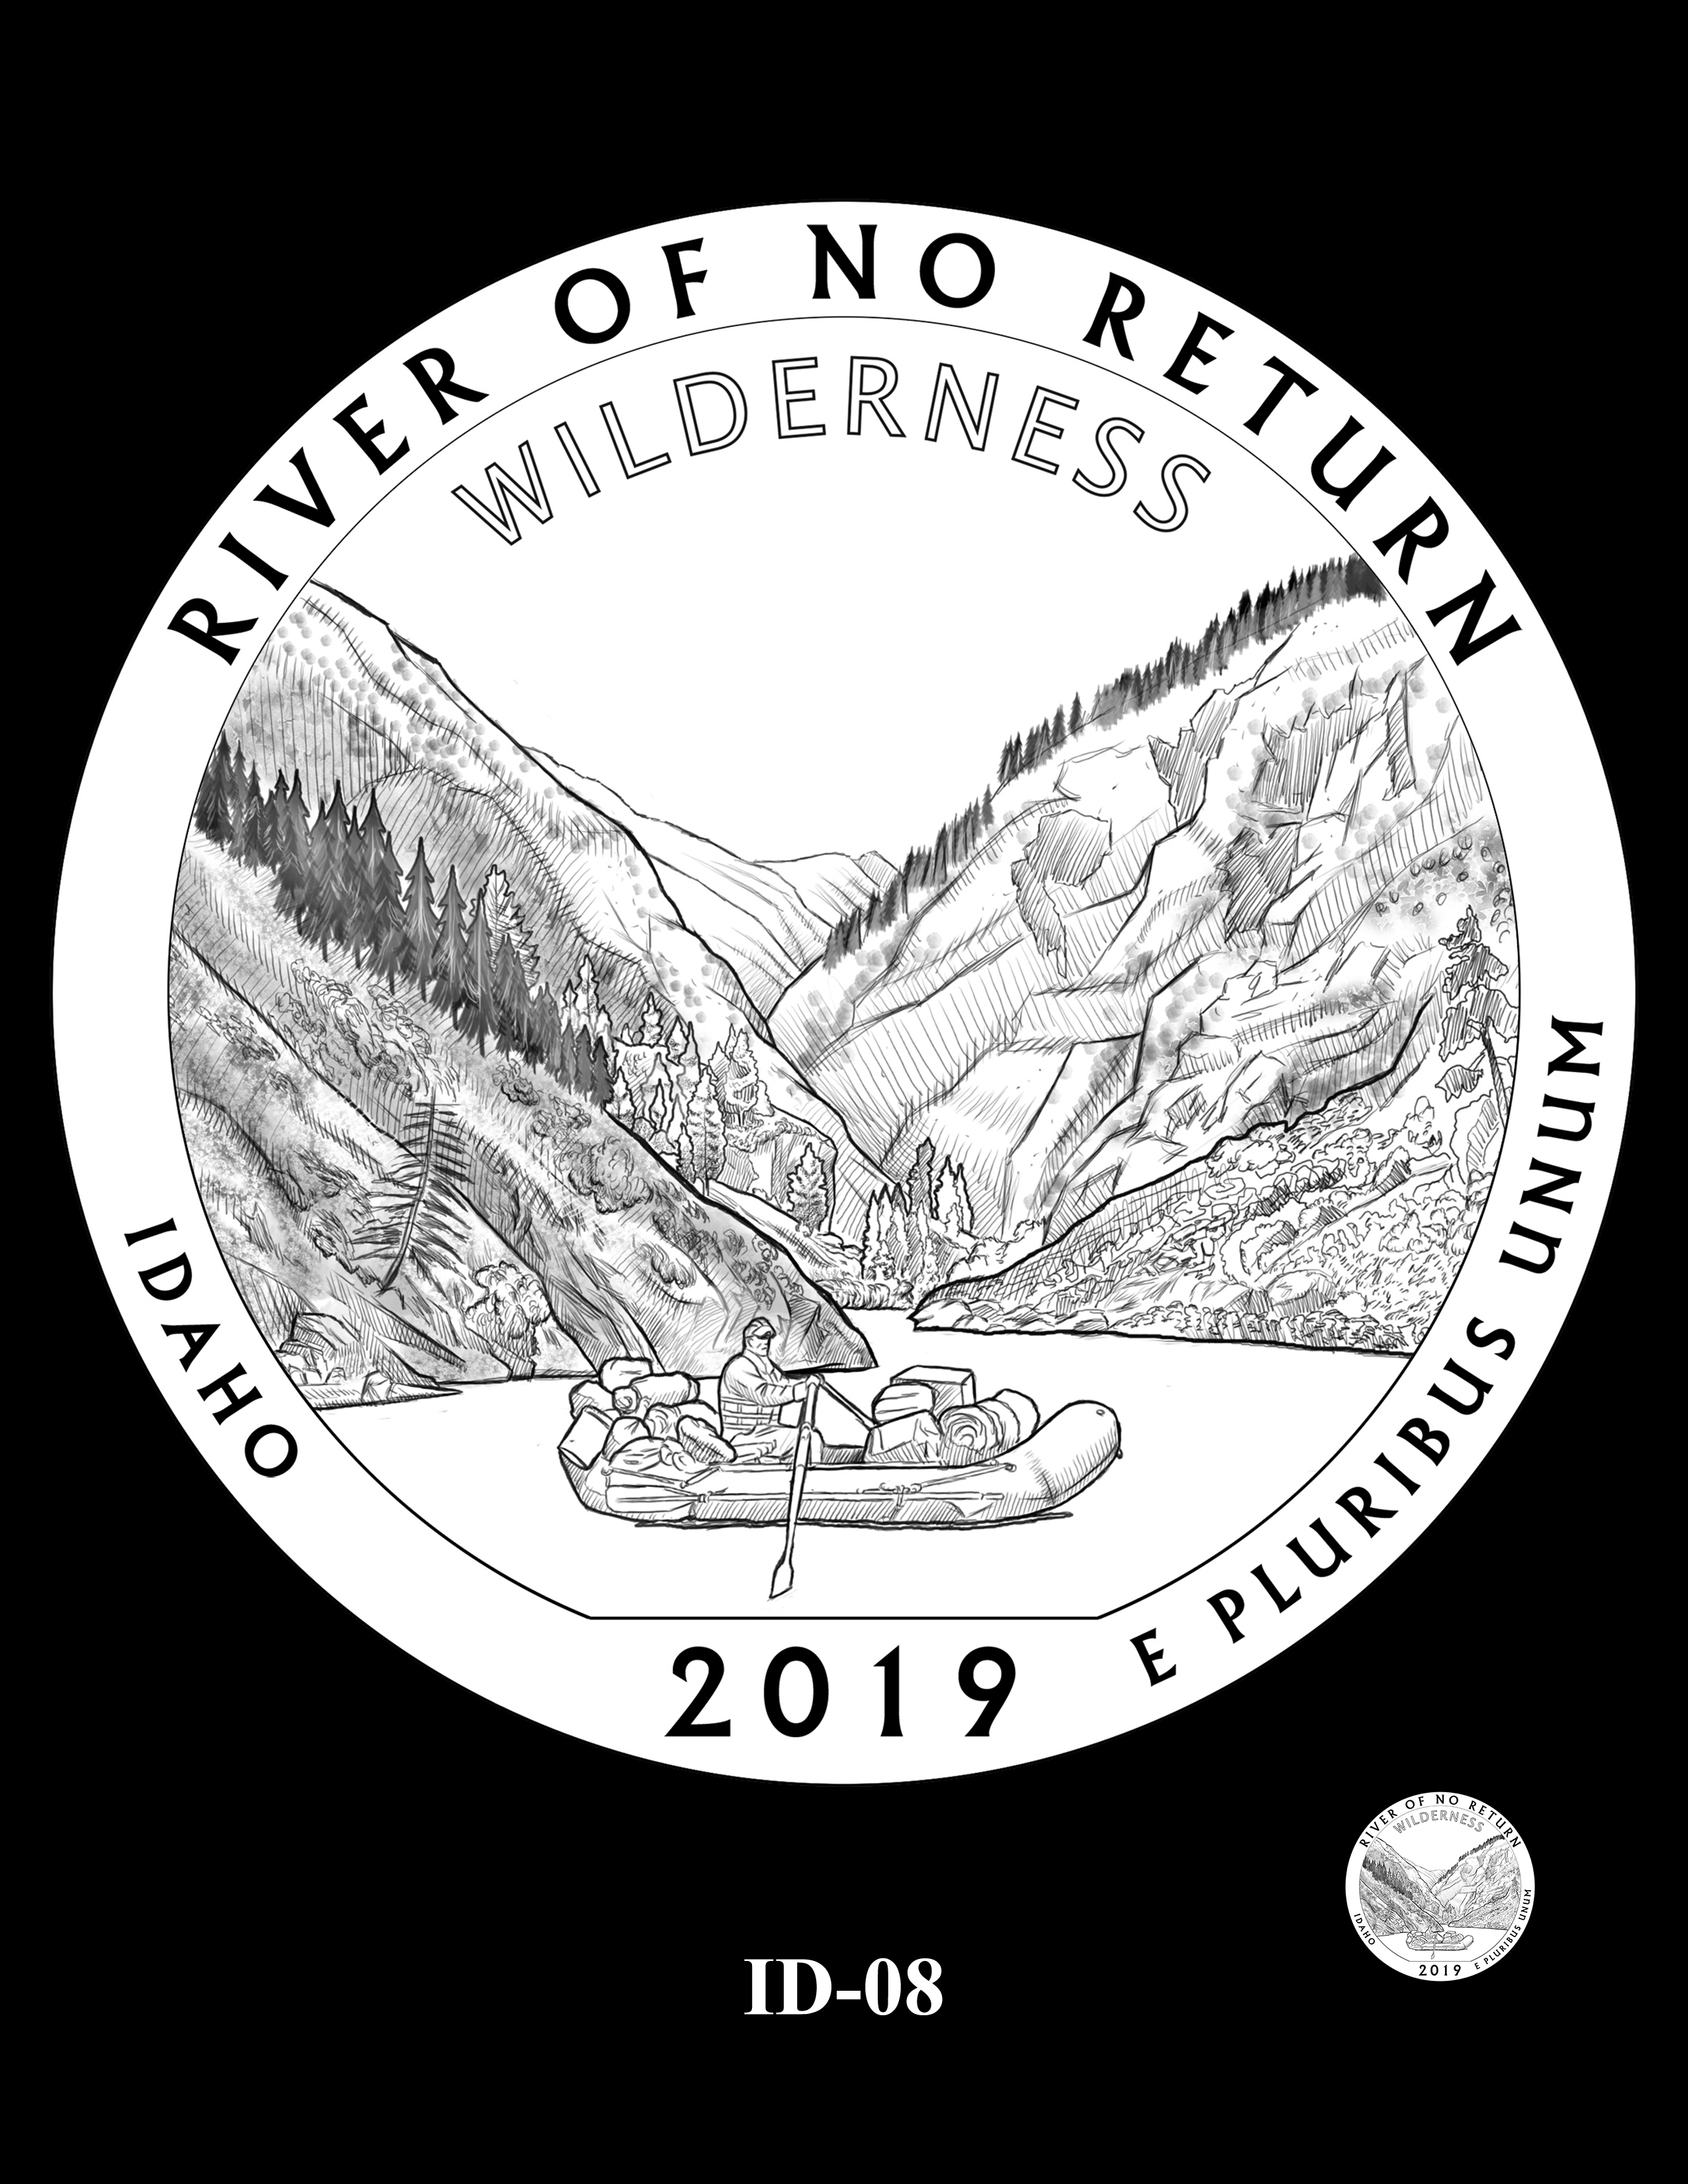 ID-08 -- 2019 America the Beautiful Quarters® Program